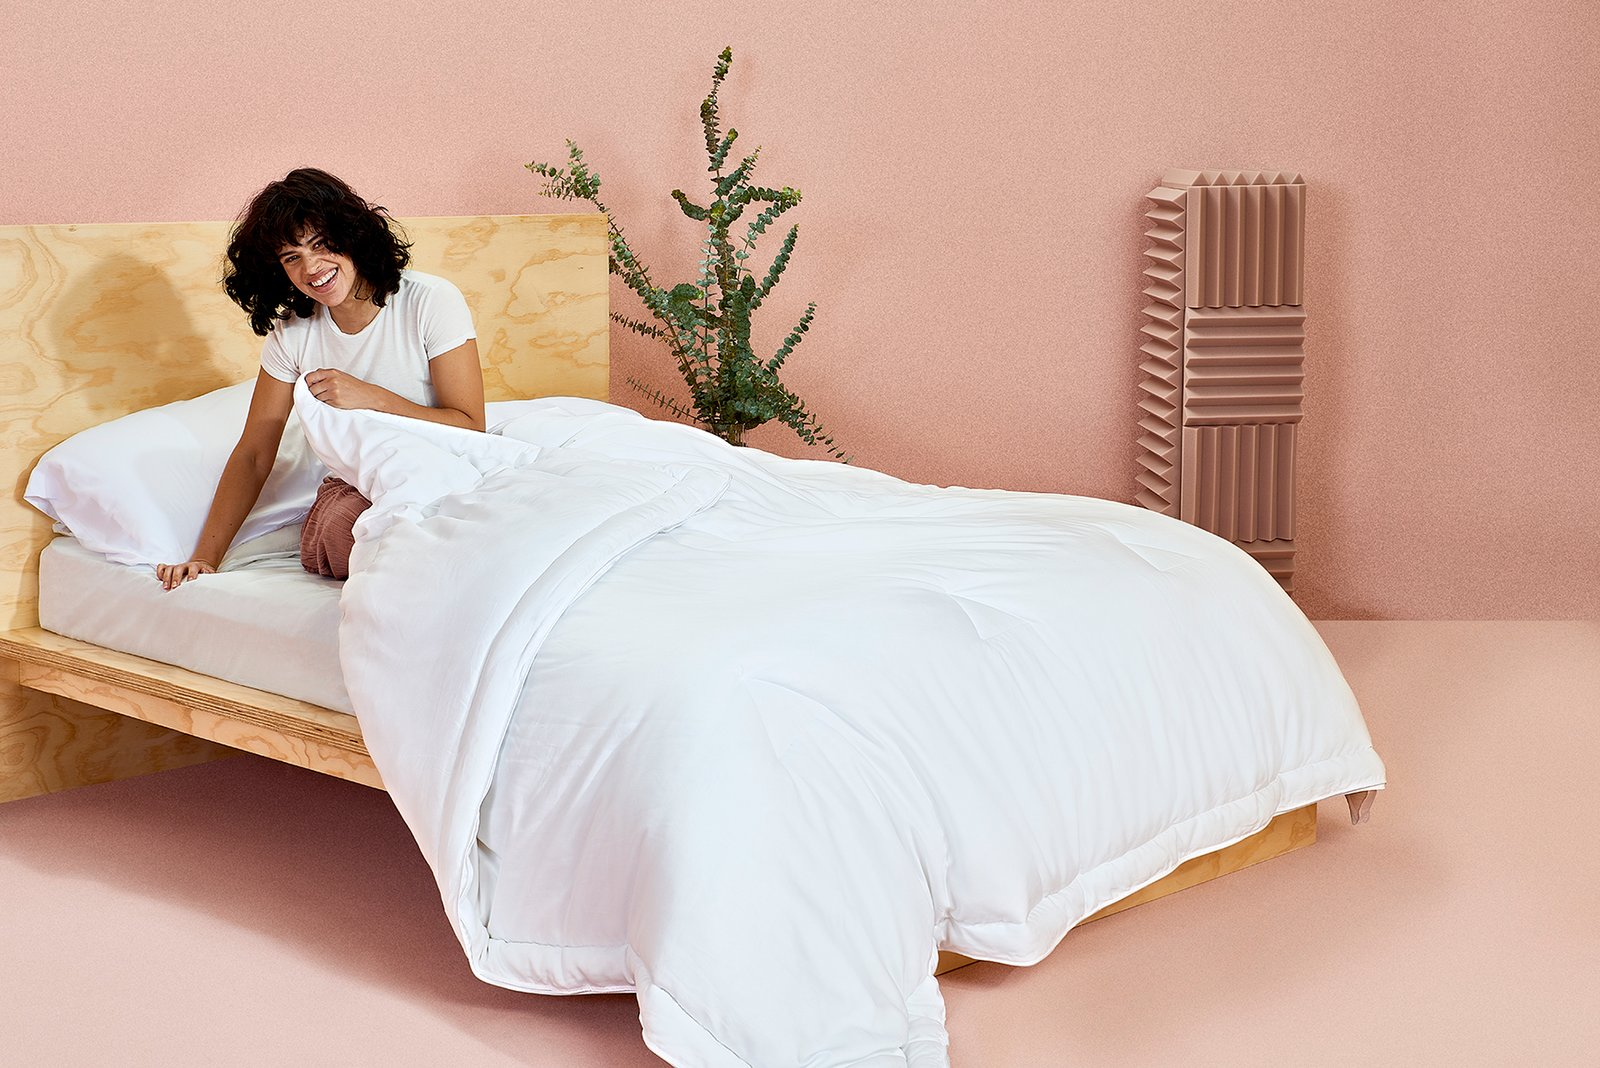 Photo 1 of 13 in The Best Places to Buy Hotel-Quality Bedding That Won't Break the Bank